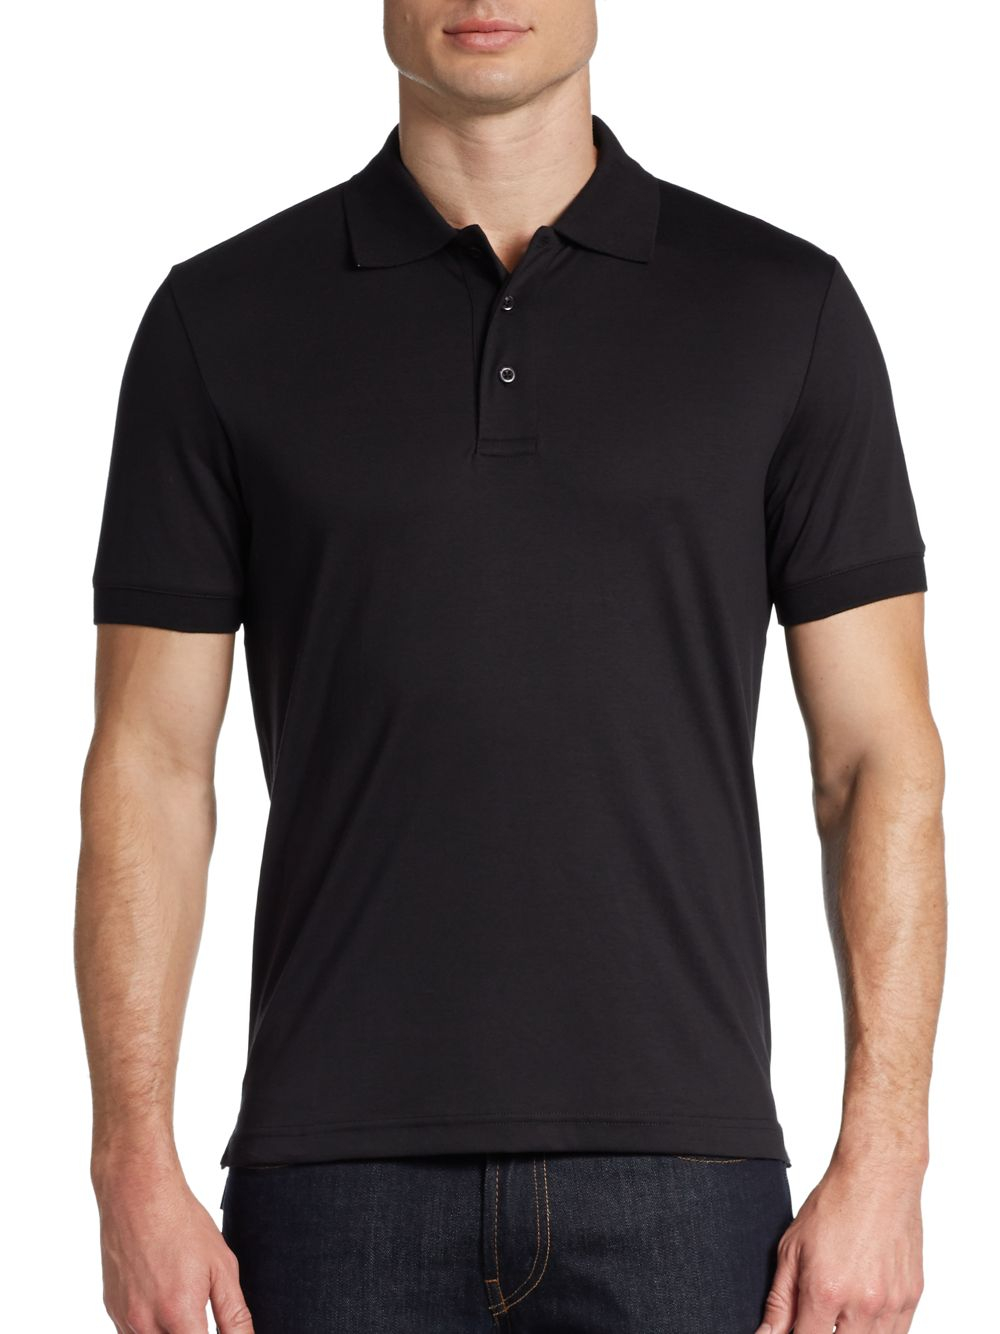 Saks fifth avenue black label slim fit ice cotton polo for Black fitted polo shirt